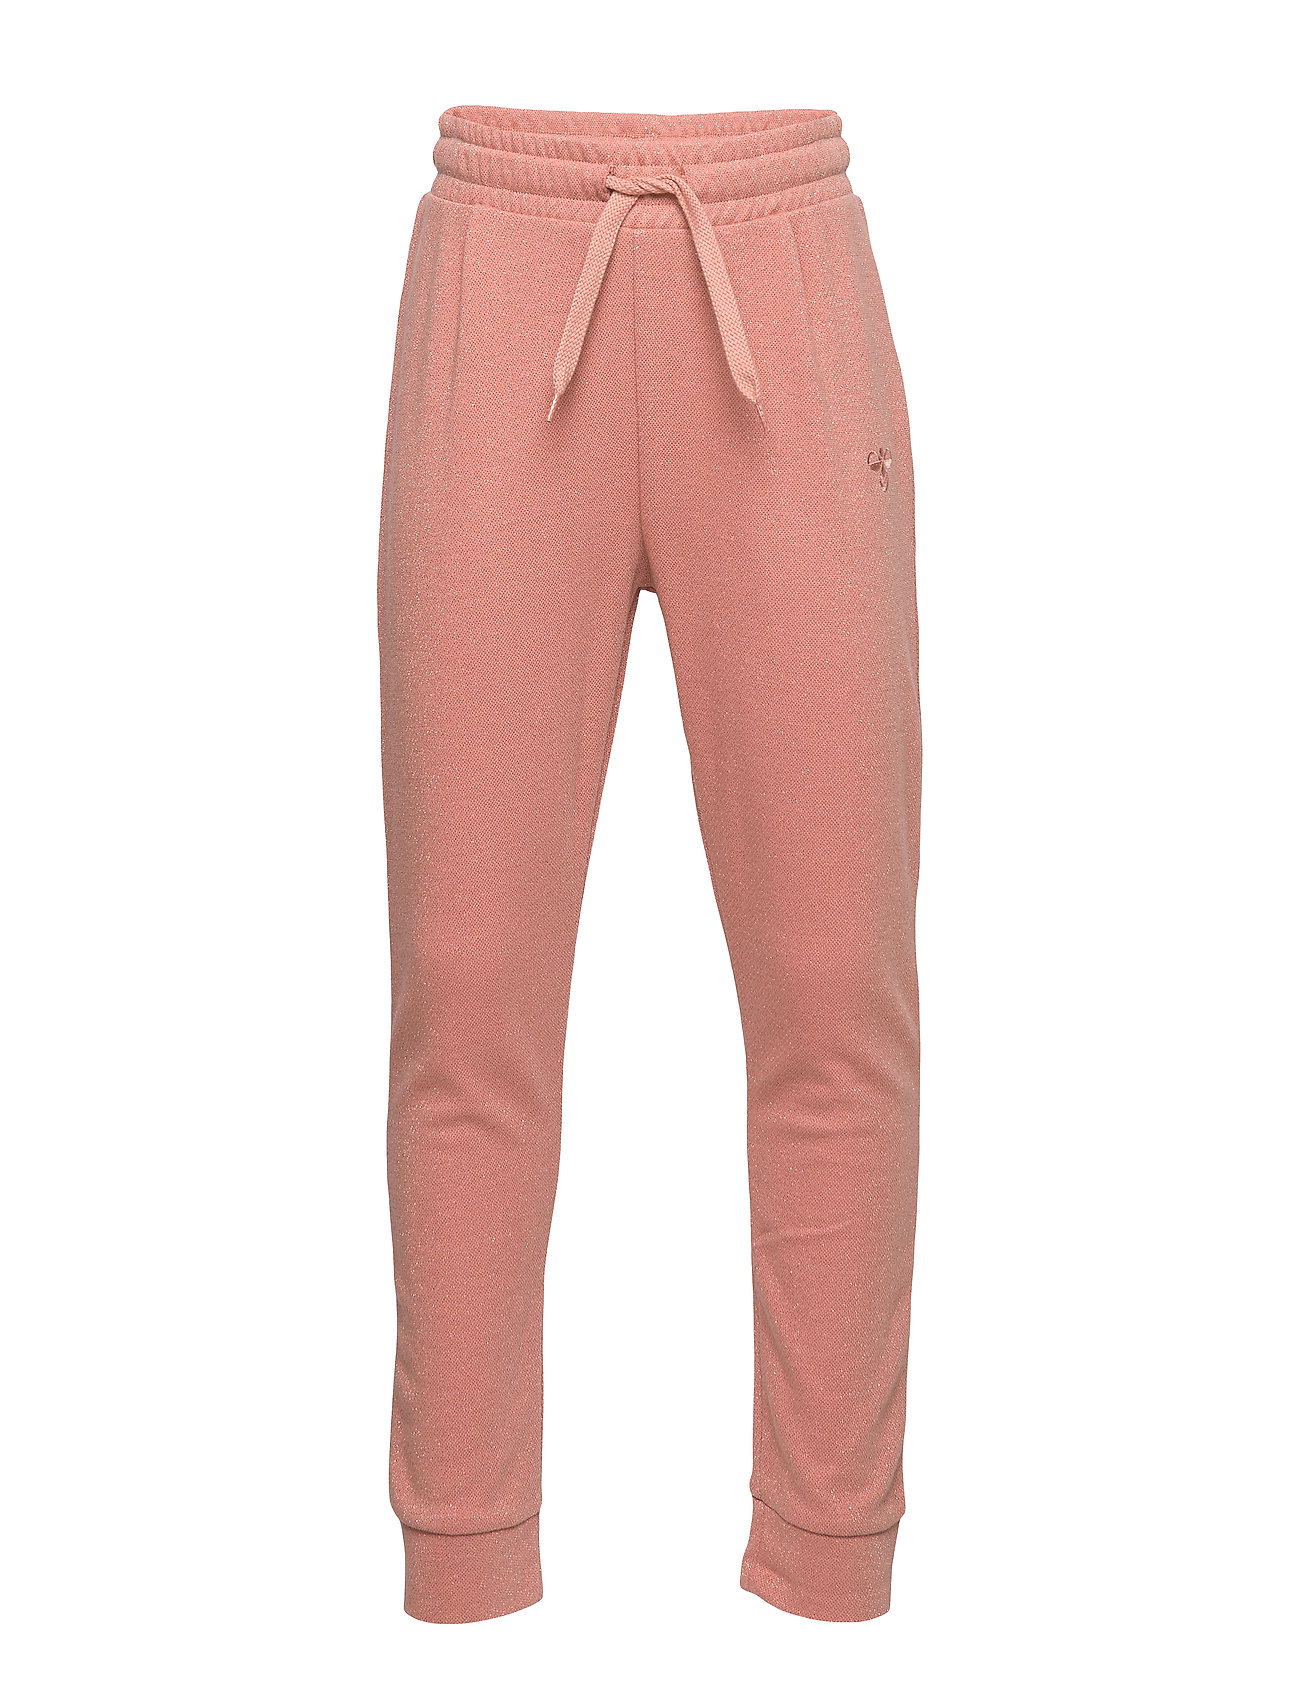 Hummel hmlKATTI PANTS - ROSE DAWN